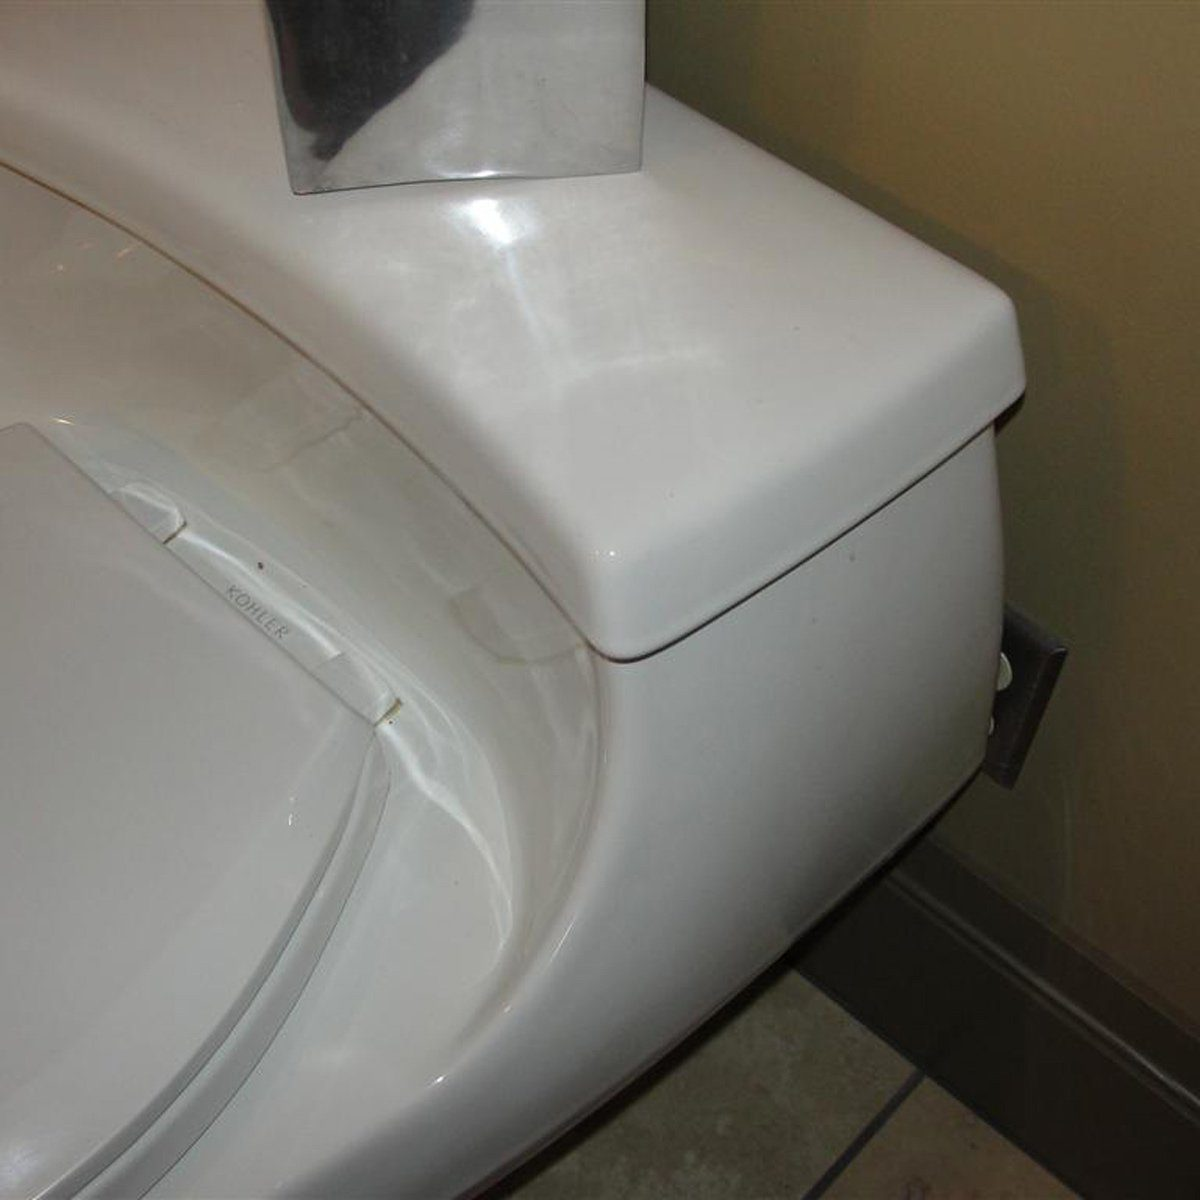 Blocked-Outlet behind toilet